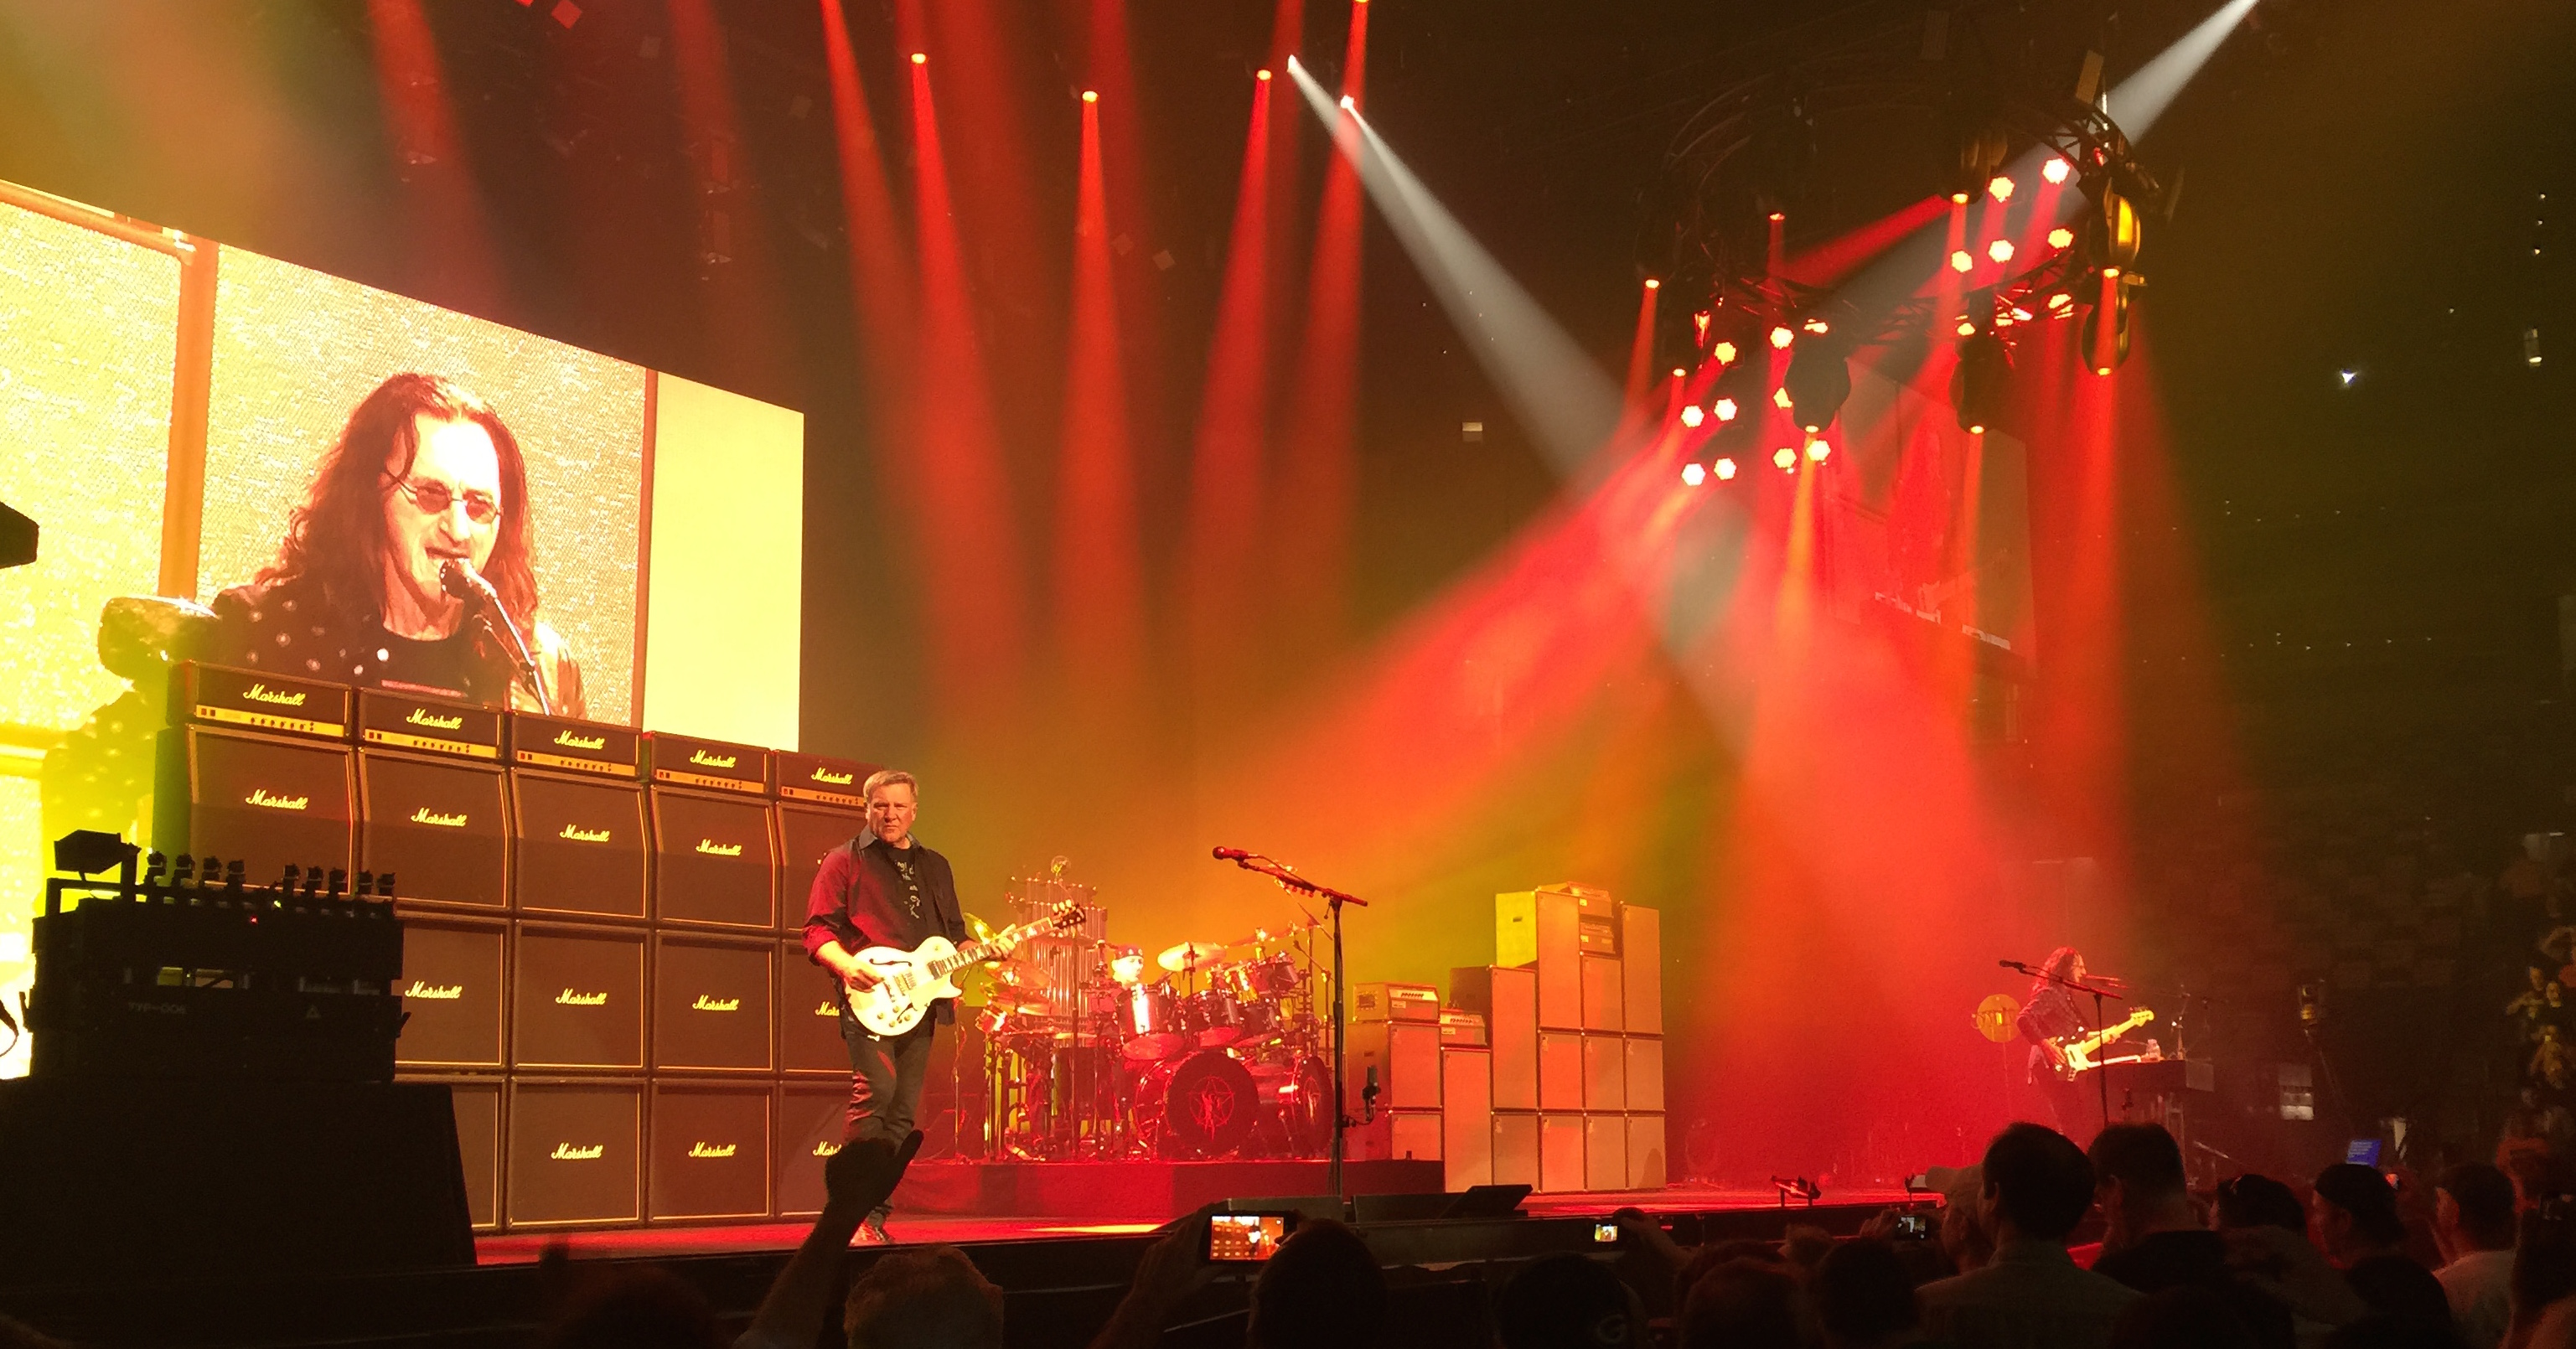 A humble review of Rush R40 in Boston on Tue Jun 23, 2015.